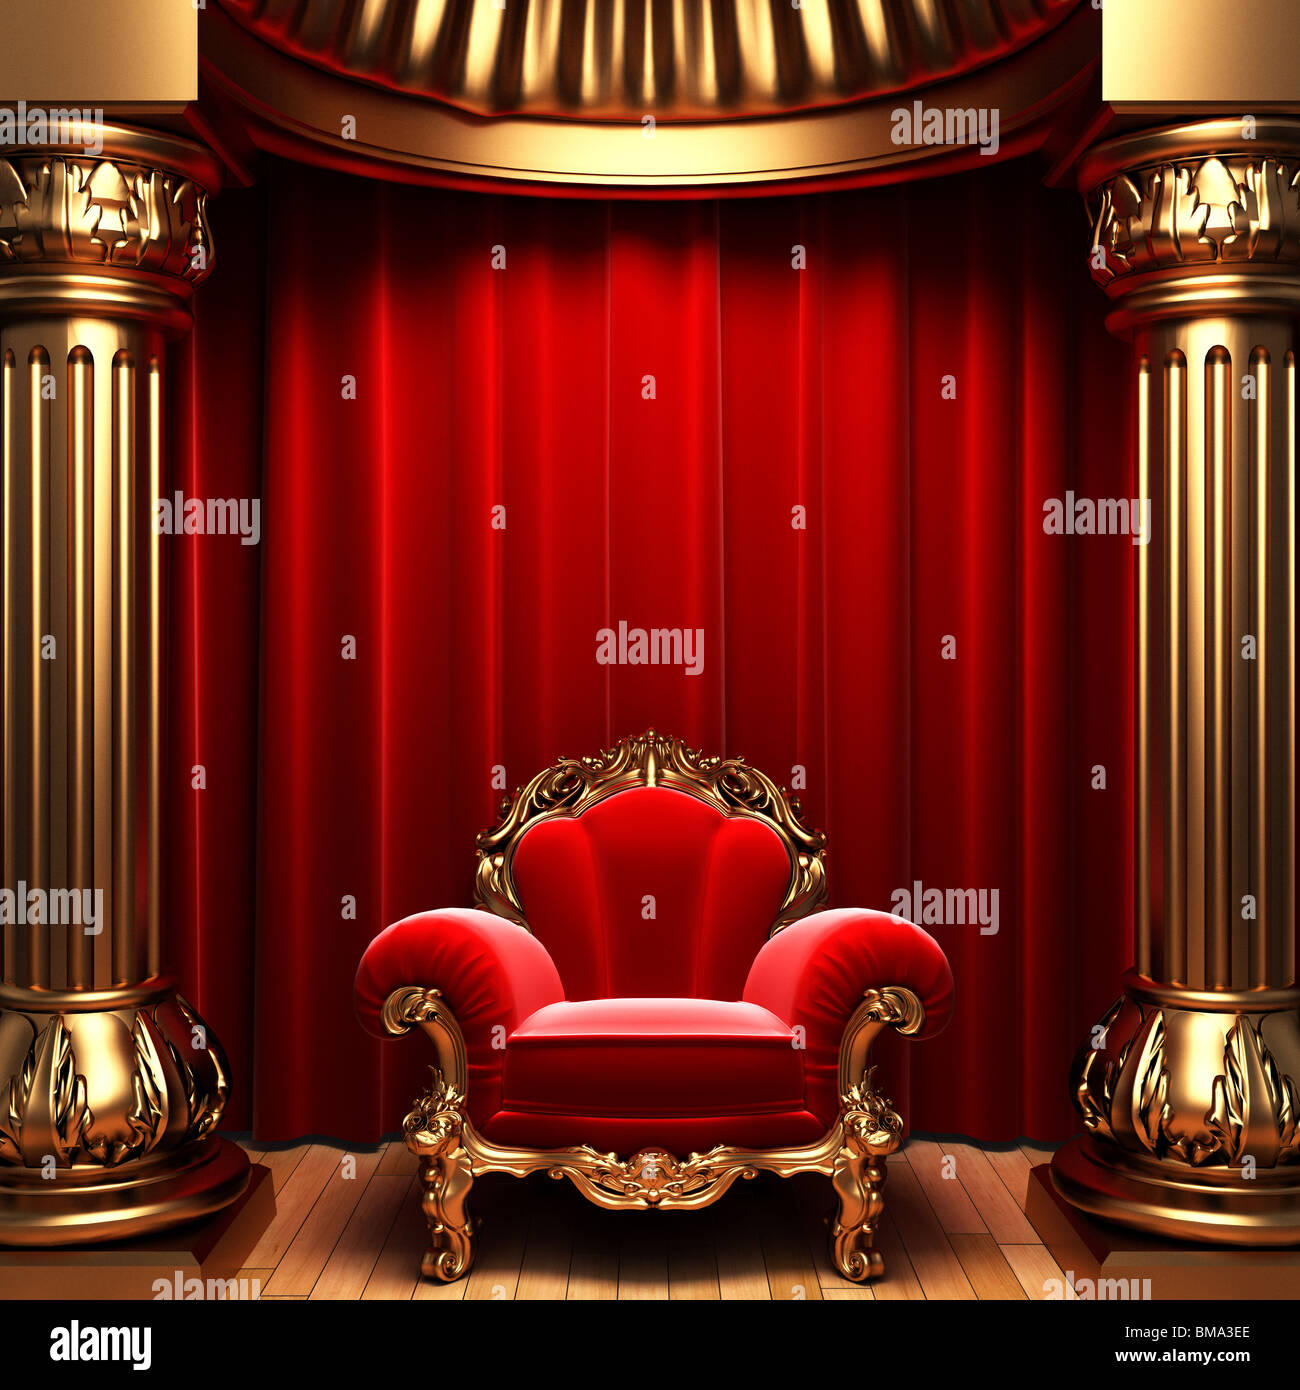 Red velvet curtains gold columns and chair made in 3d for Red and gold drapes